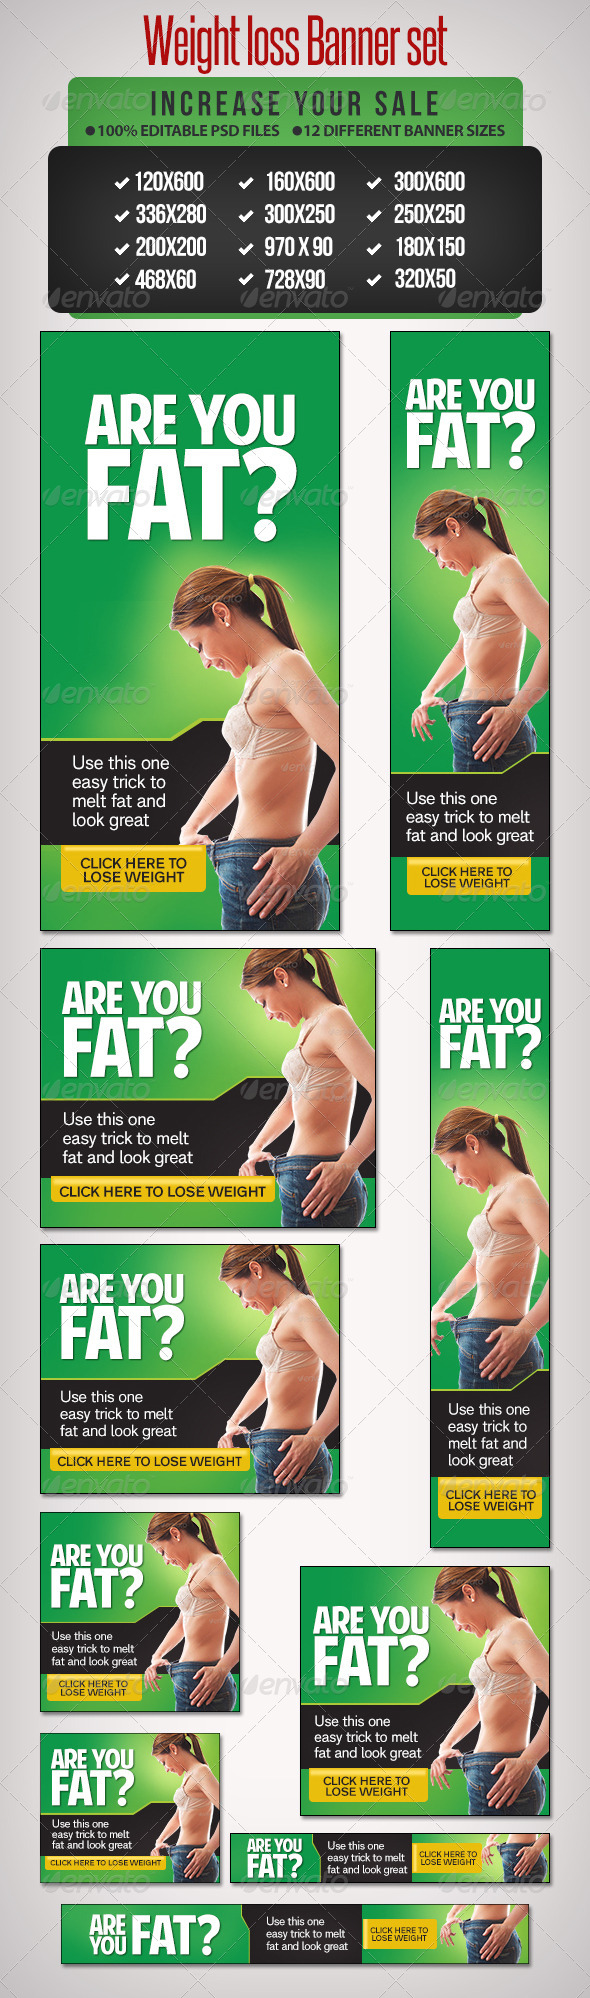 Weight Loss Banner Set 10 - Banners & Ads Web Elements